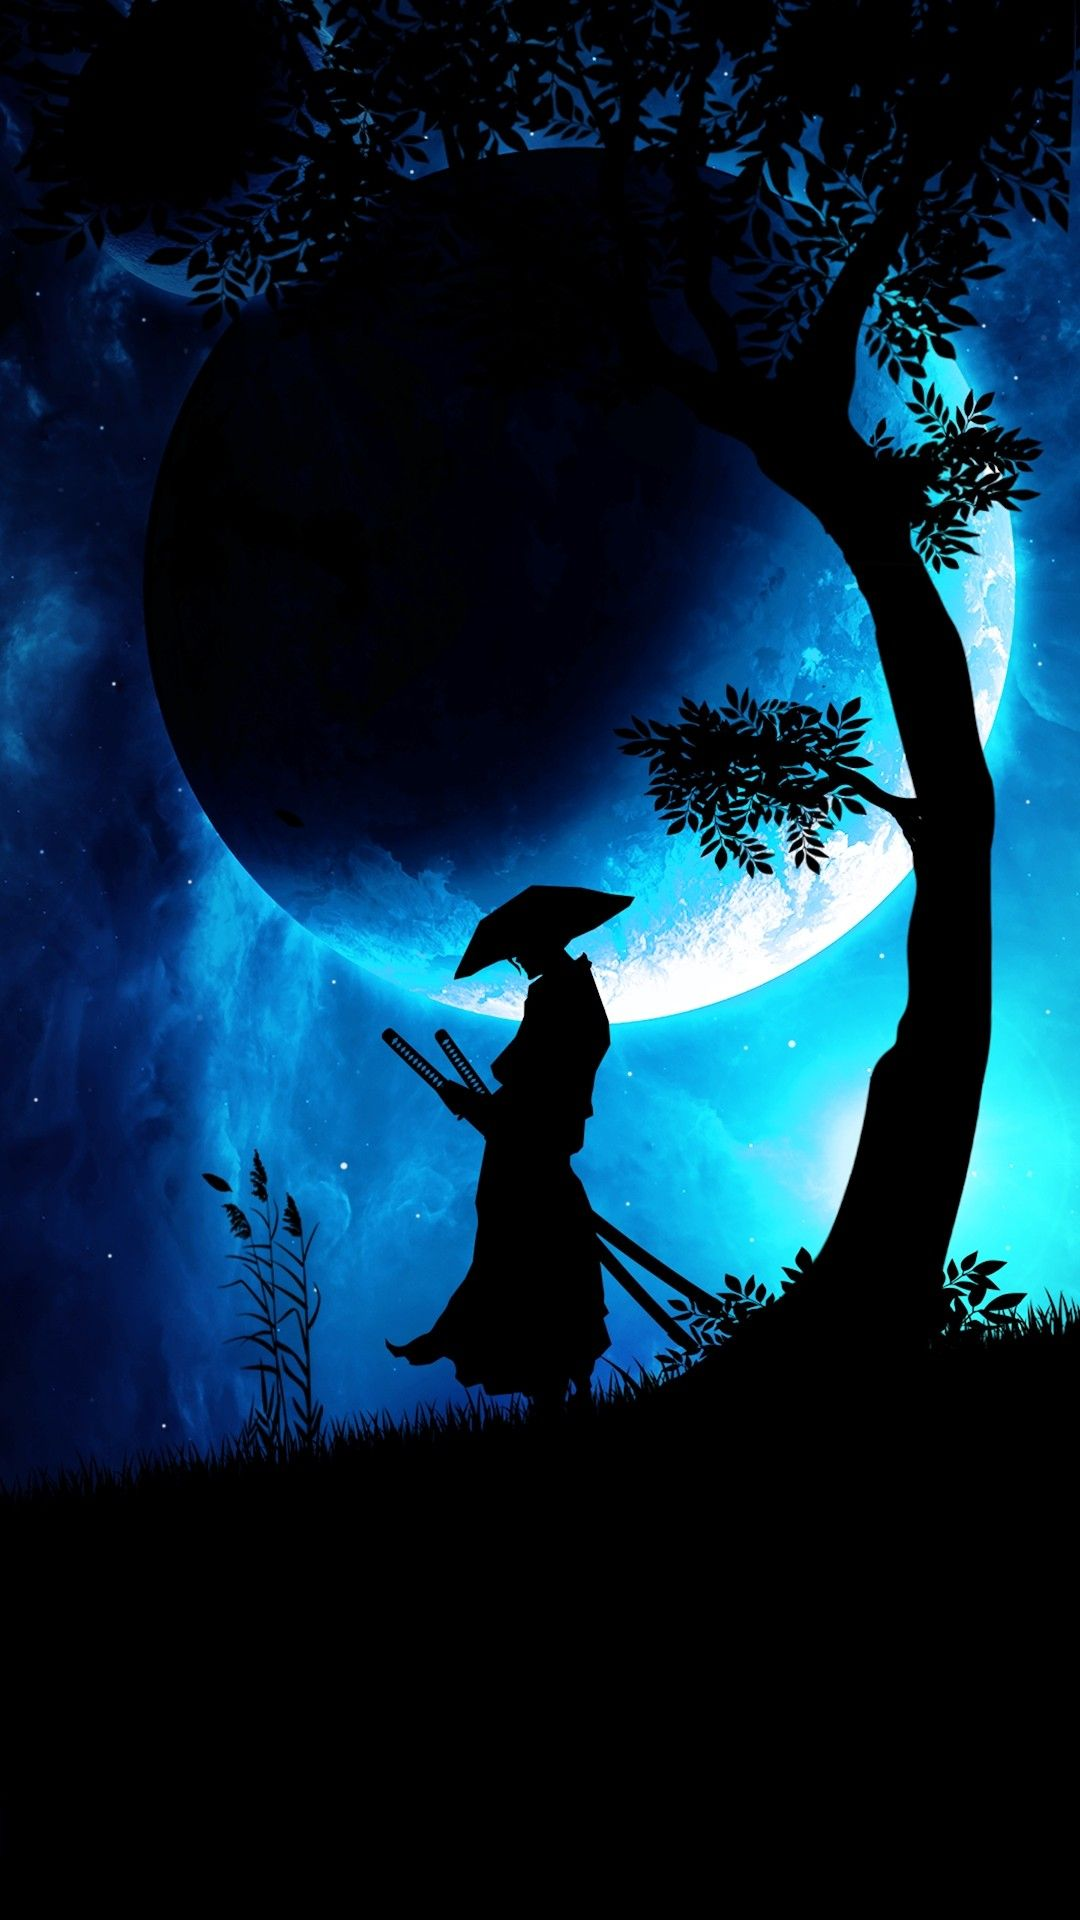 Pin by hd wallpapers on samurai image new image celestial